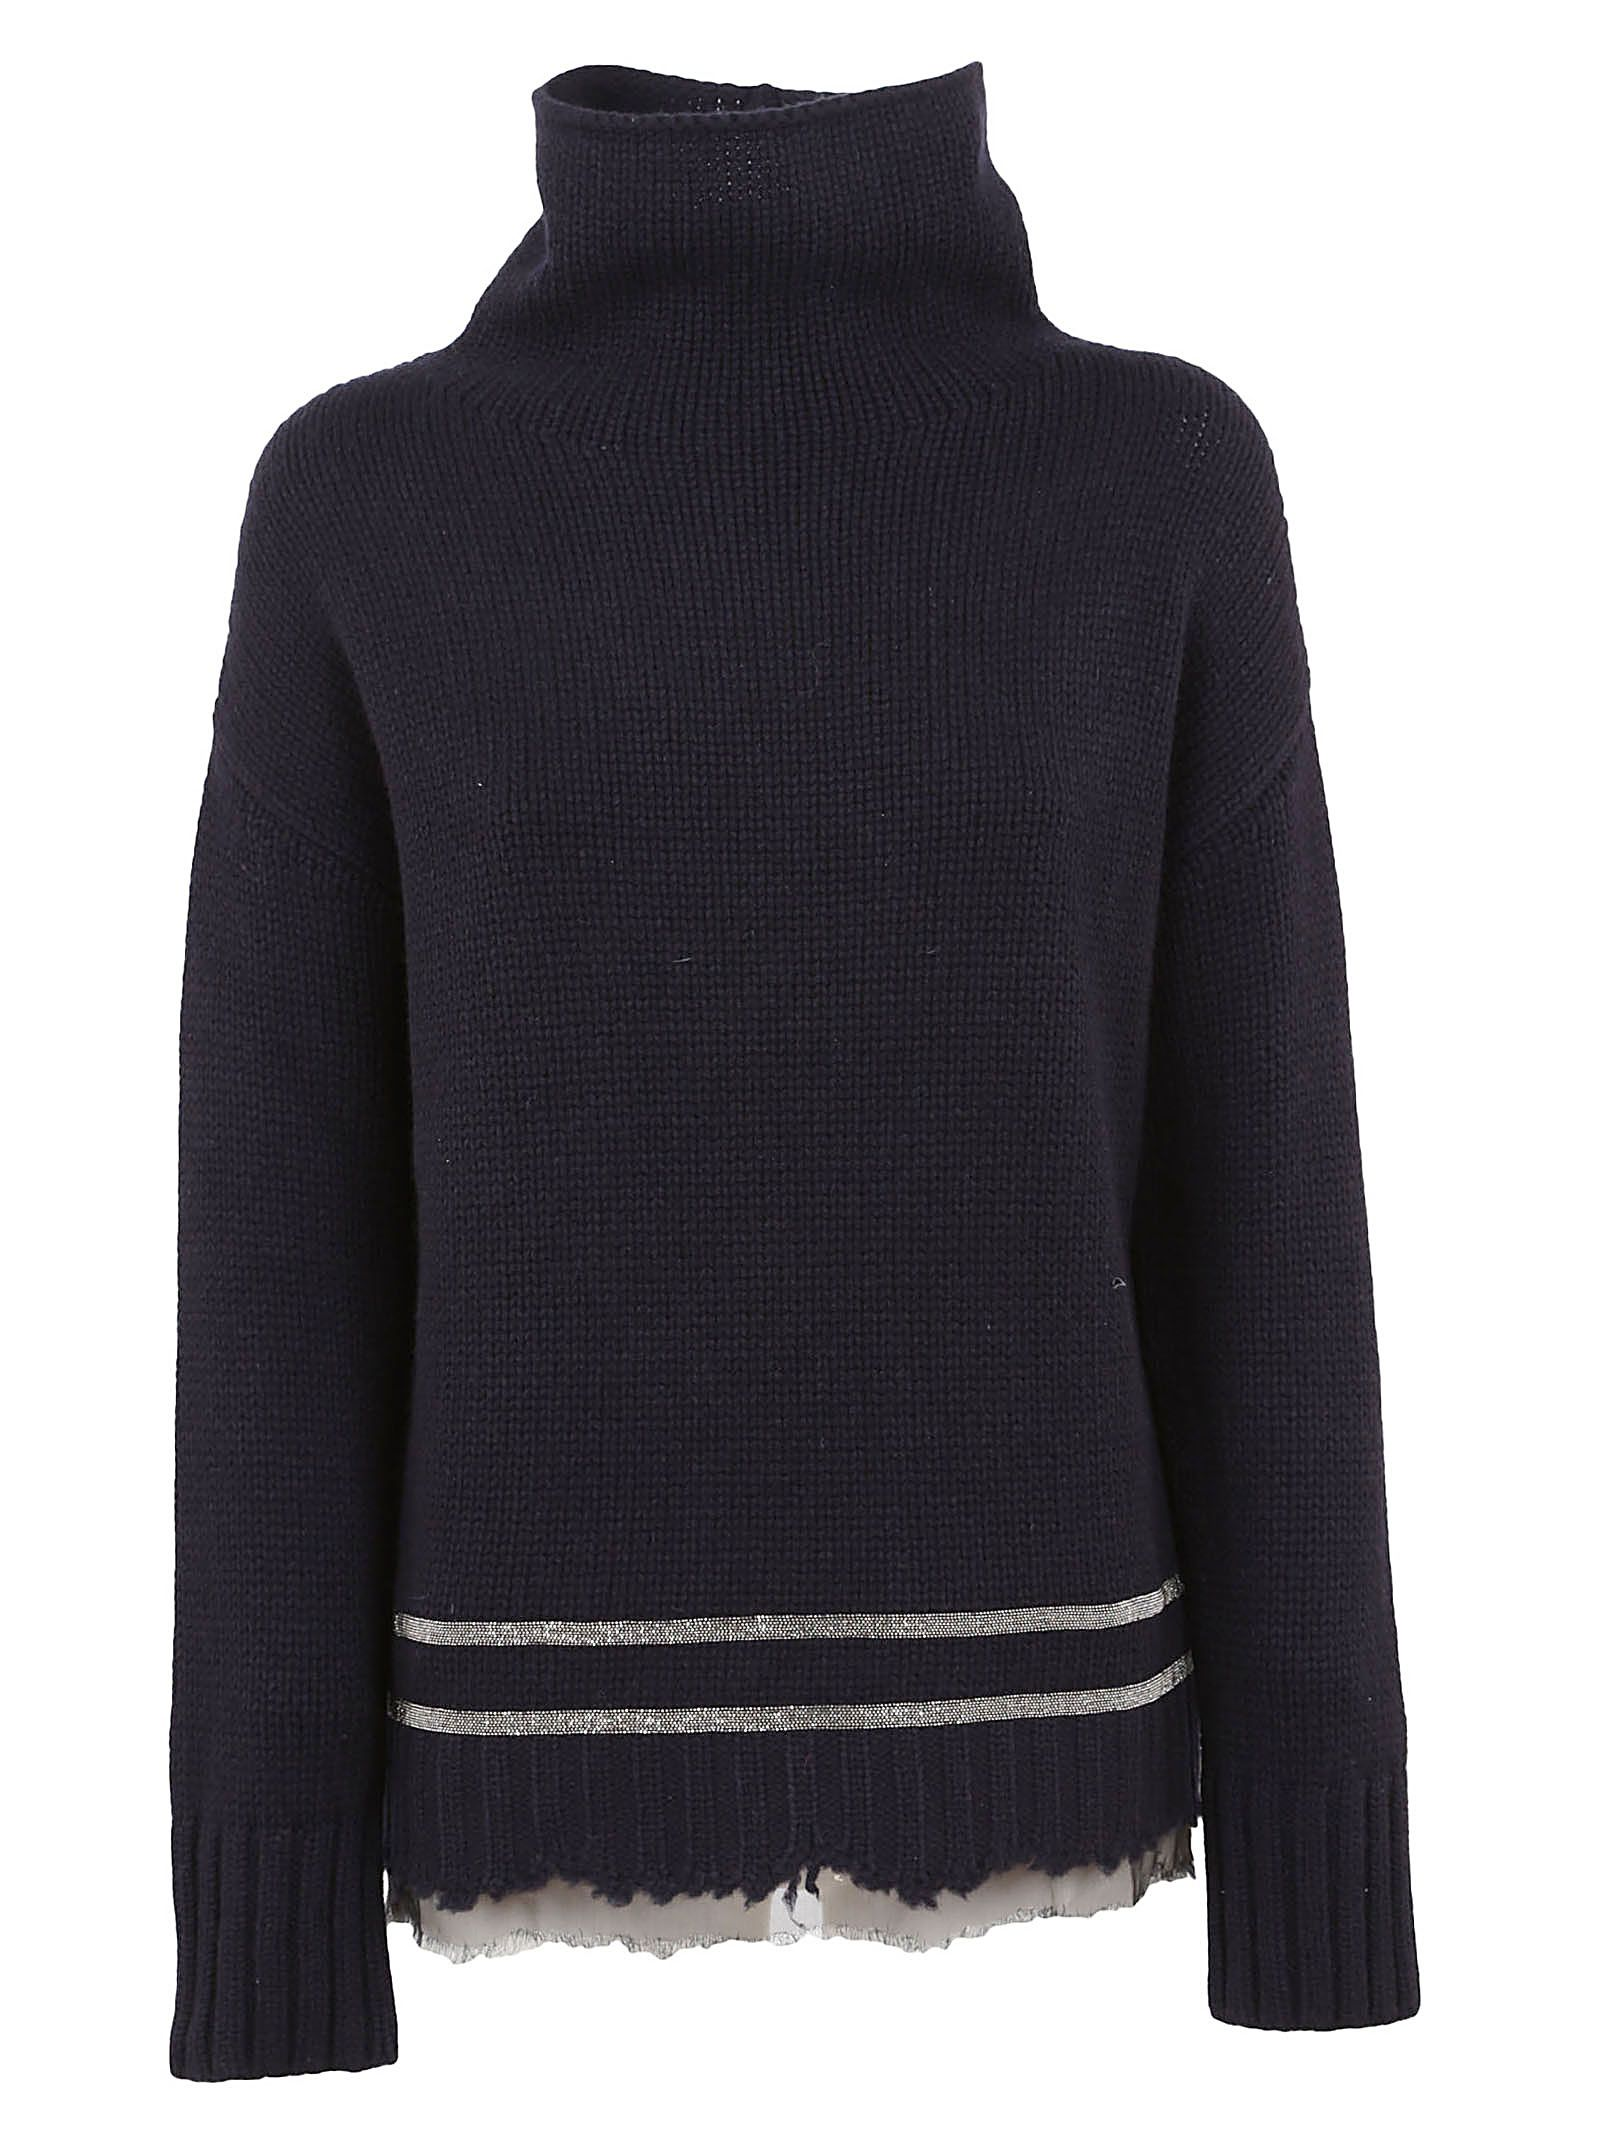 Fabiana Filippi Wool Sweater